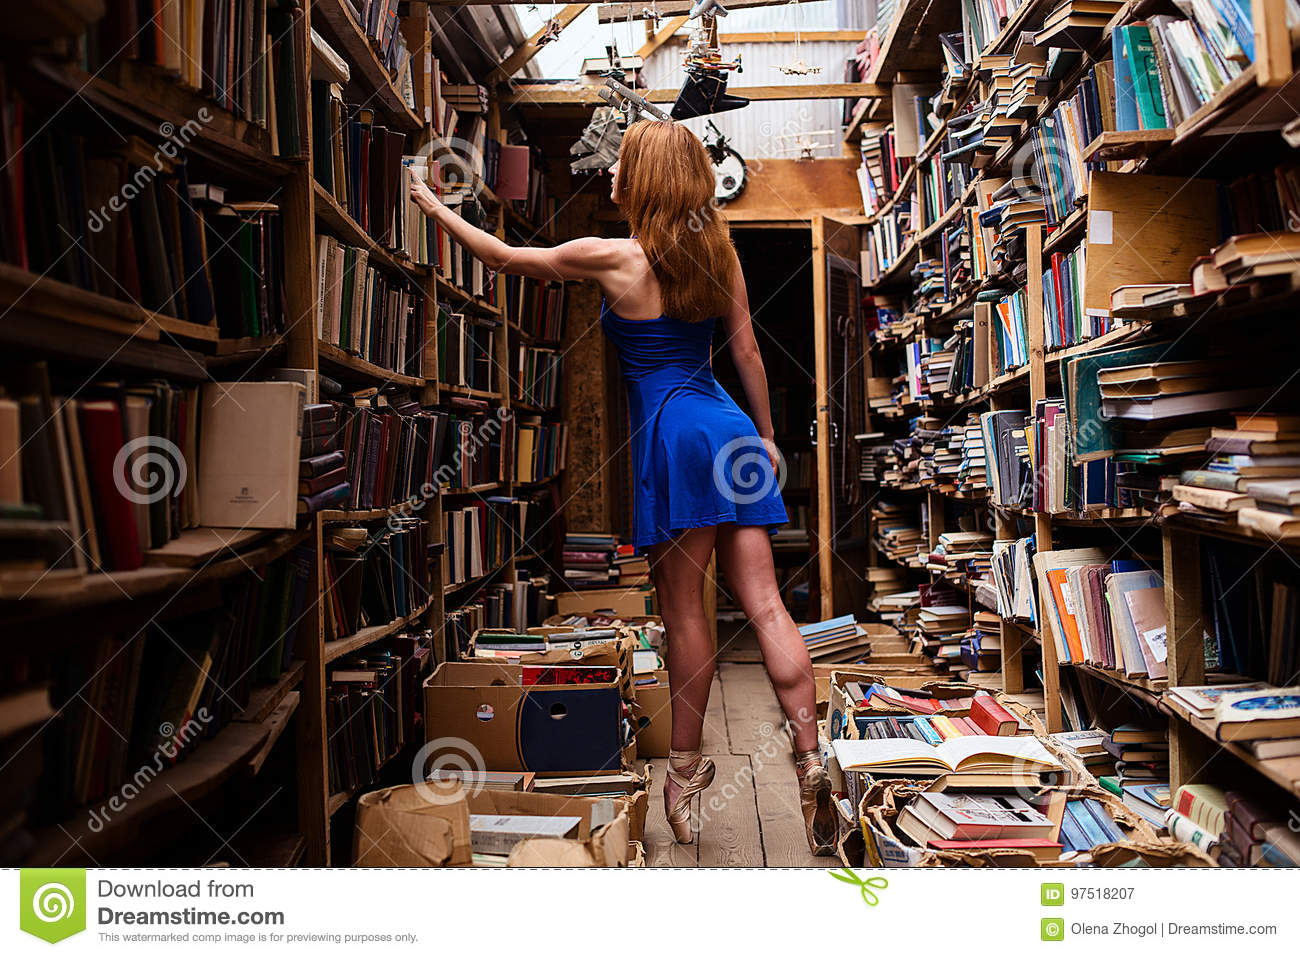 Portrait of ballerina girl in vintage book store wearing casual clothes